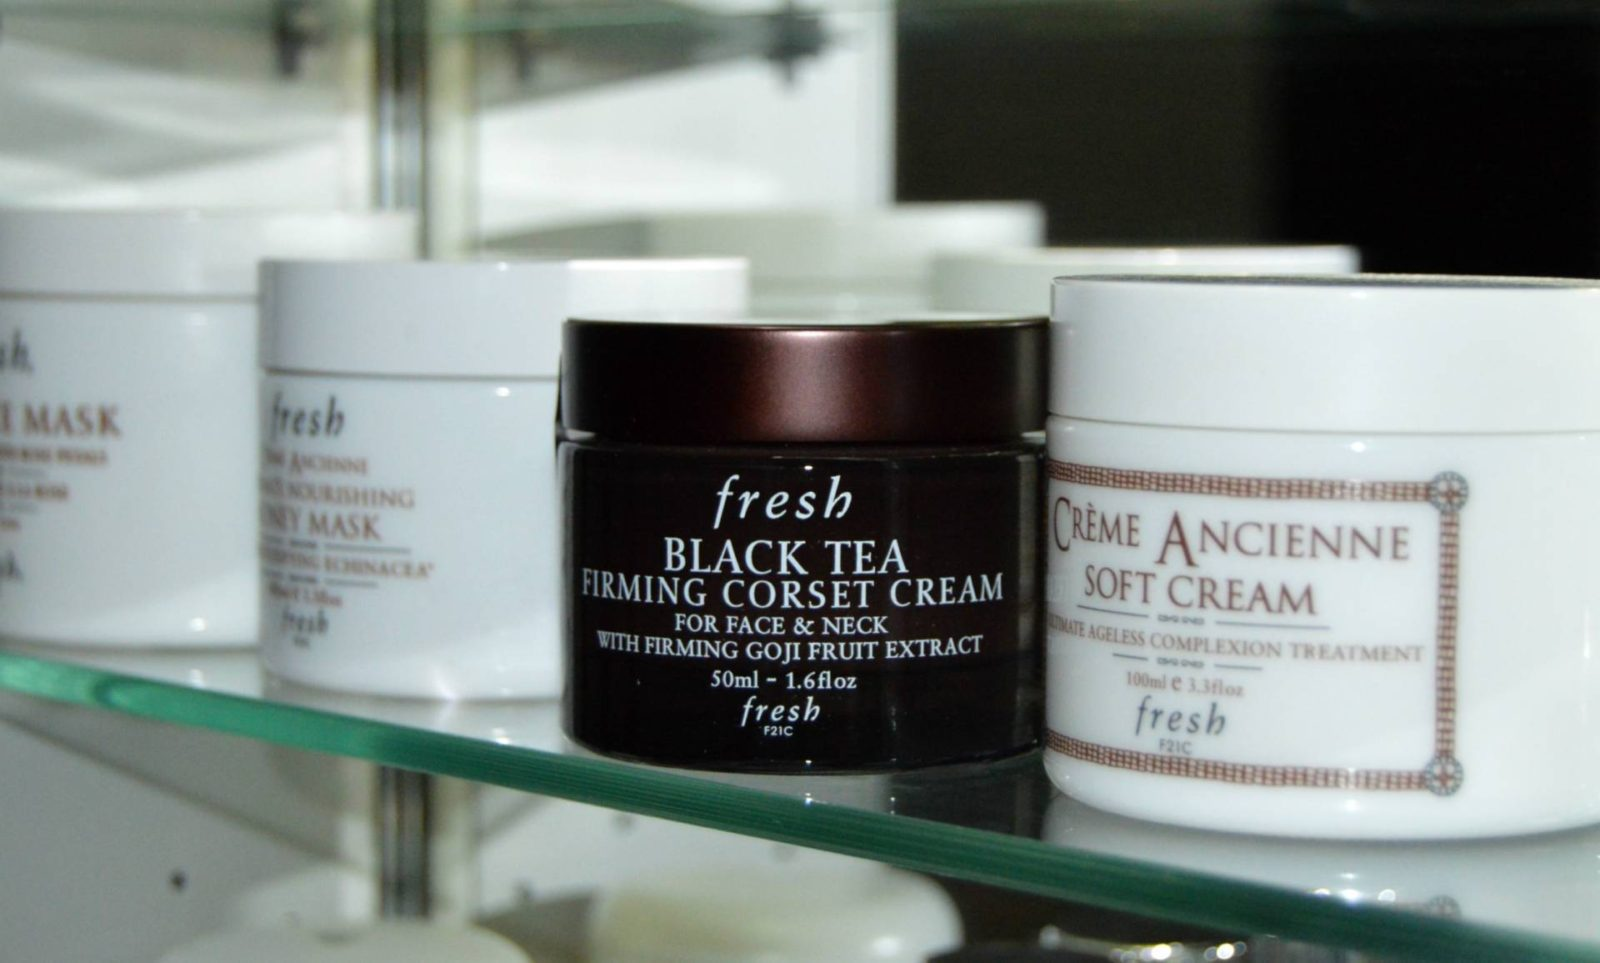 Fresh Black Tea Firming Corset Cream – Post Holiday Feels